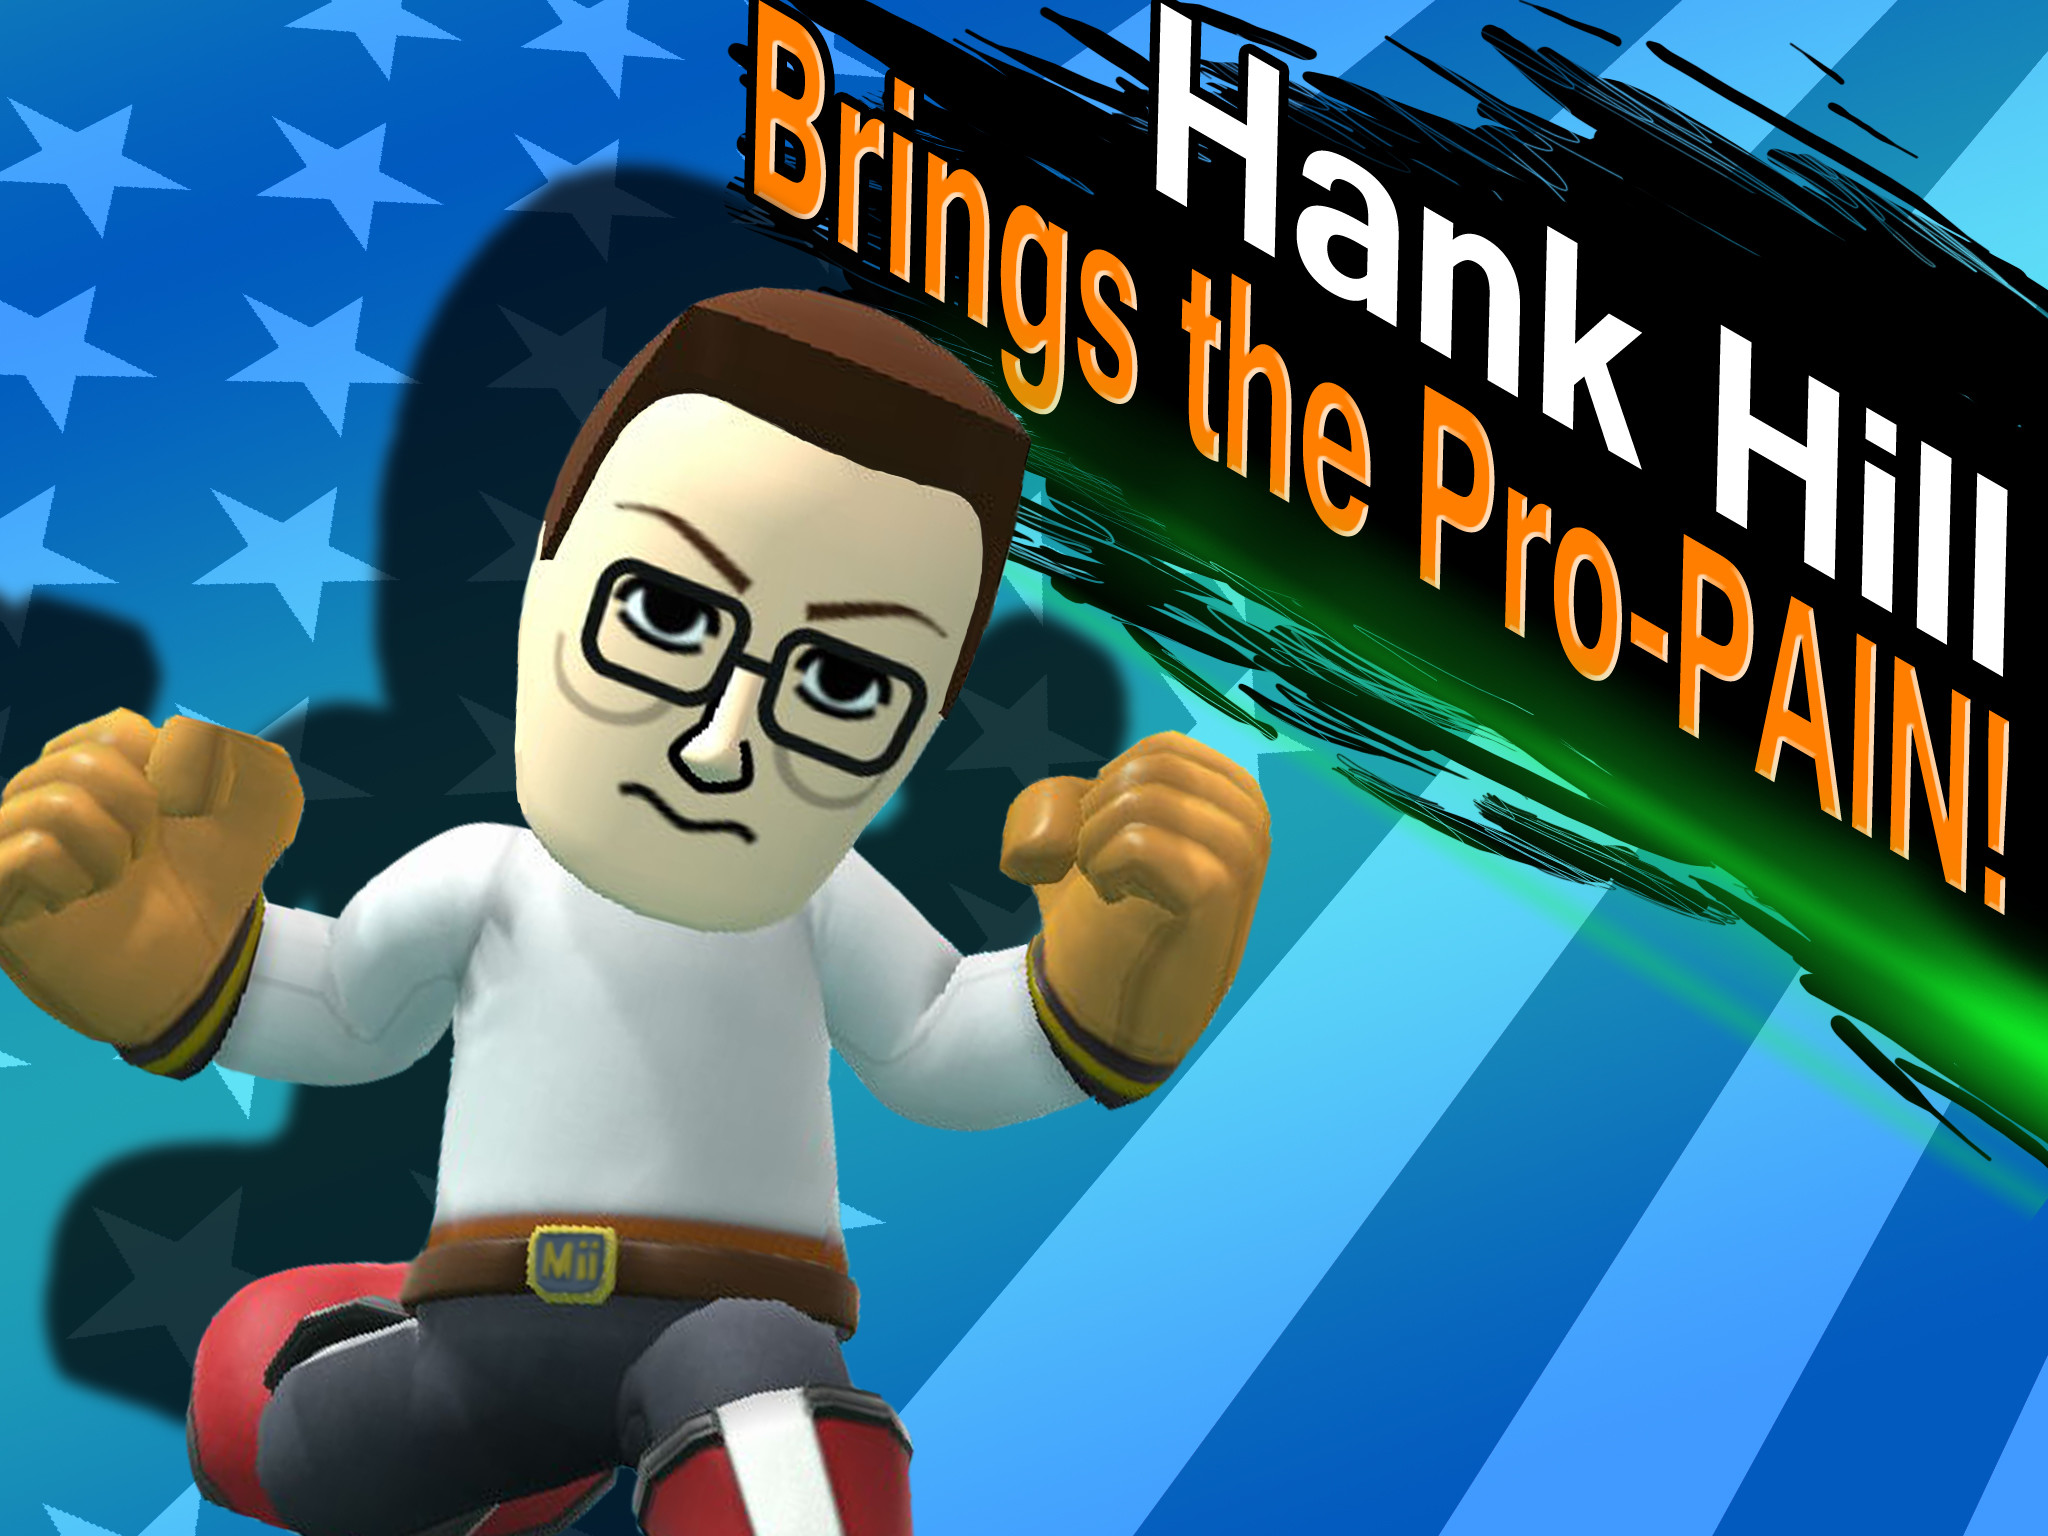 Hank Hill brings the Pro-PAIN! by NickGuillory on DeviantArt